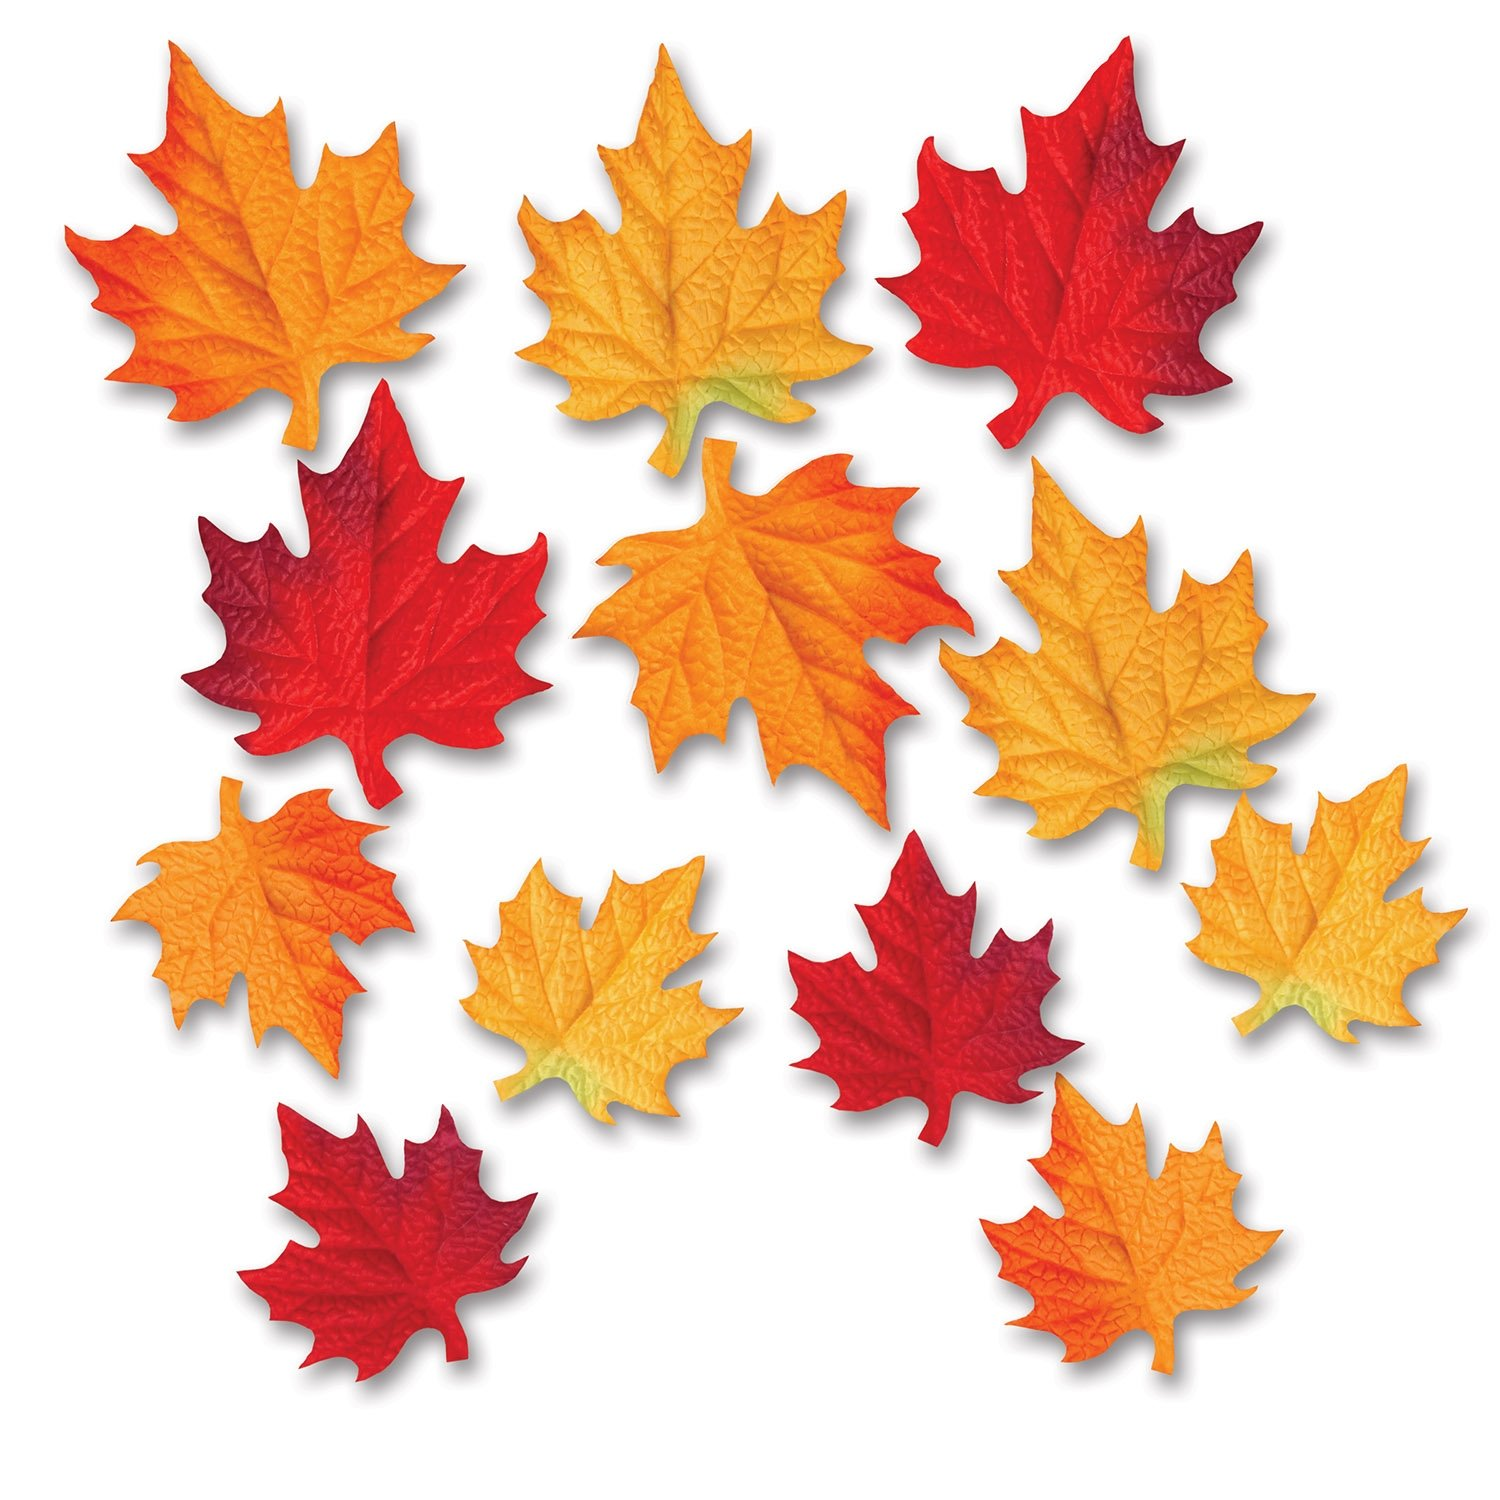 Beistle 12-Pack Deluxe Fabric Autumn Leaves Decorative Cutouts, 3-1/2 by 4-3/4-Inch The Beistle Company 90847